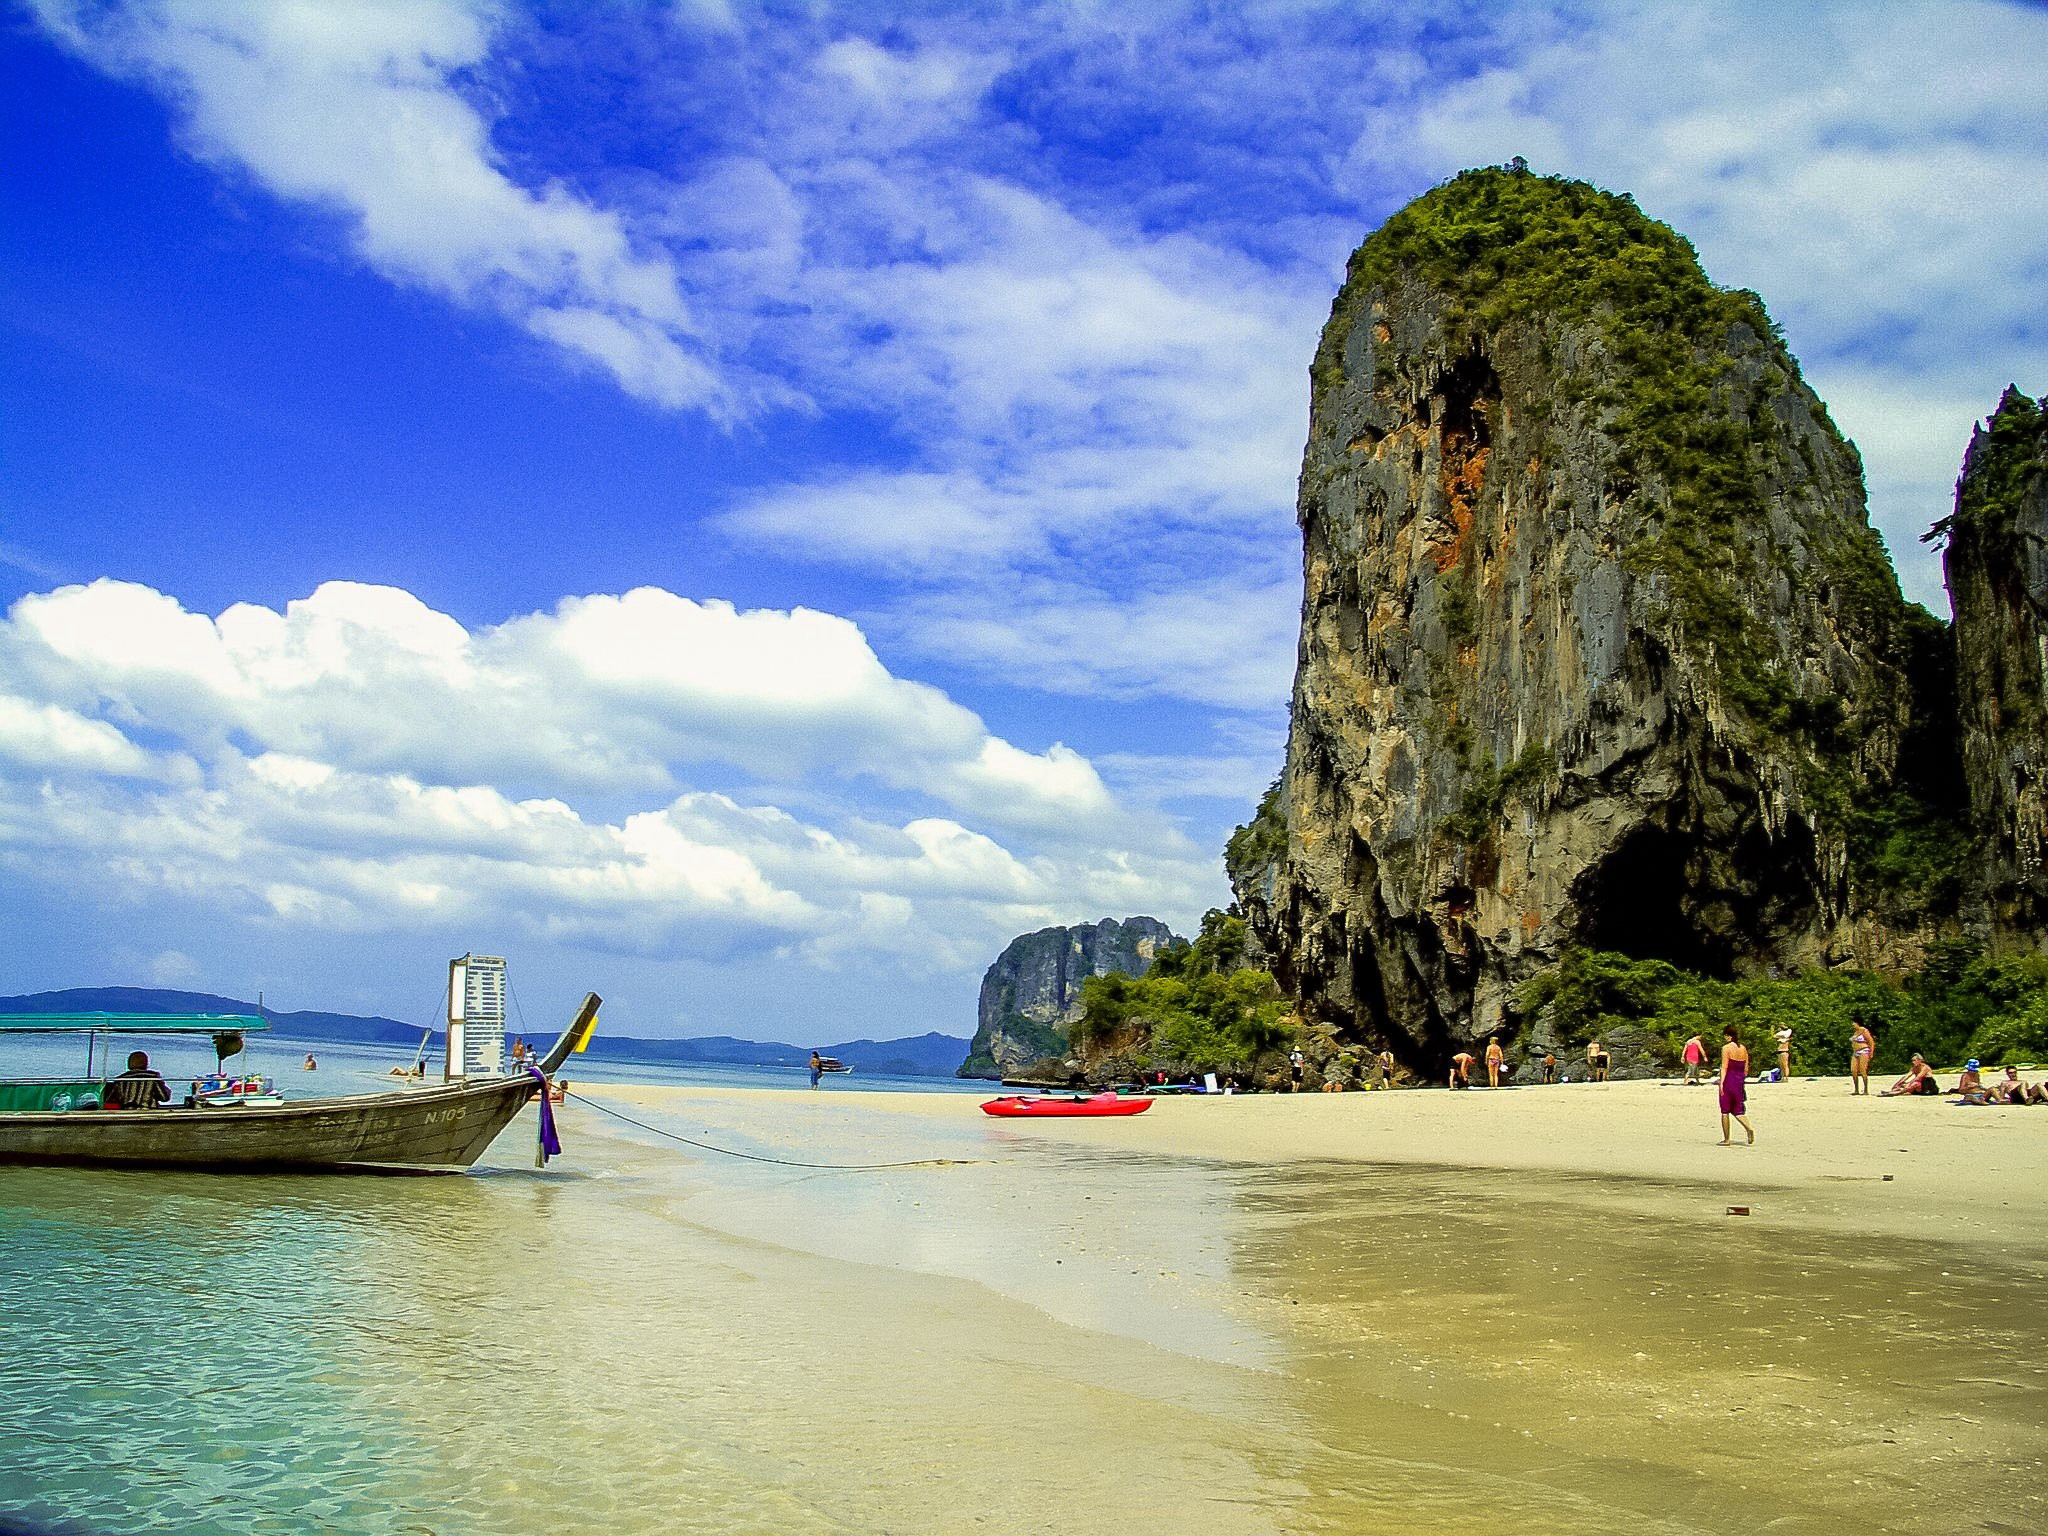 Phra Nang is the beautiful beach with Limestone Mountain and cliff.